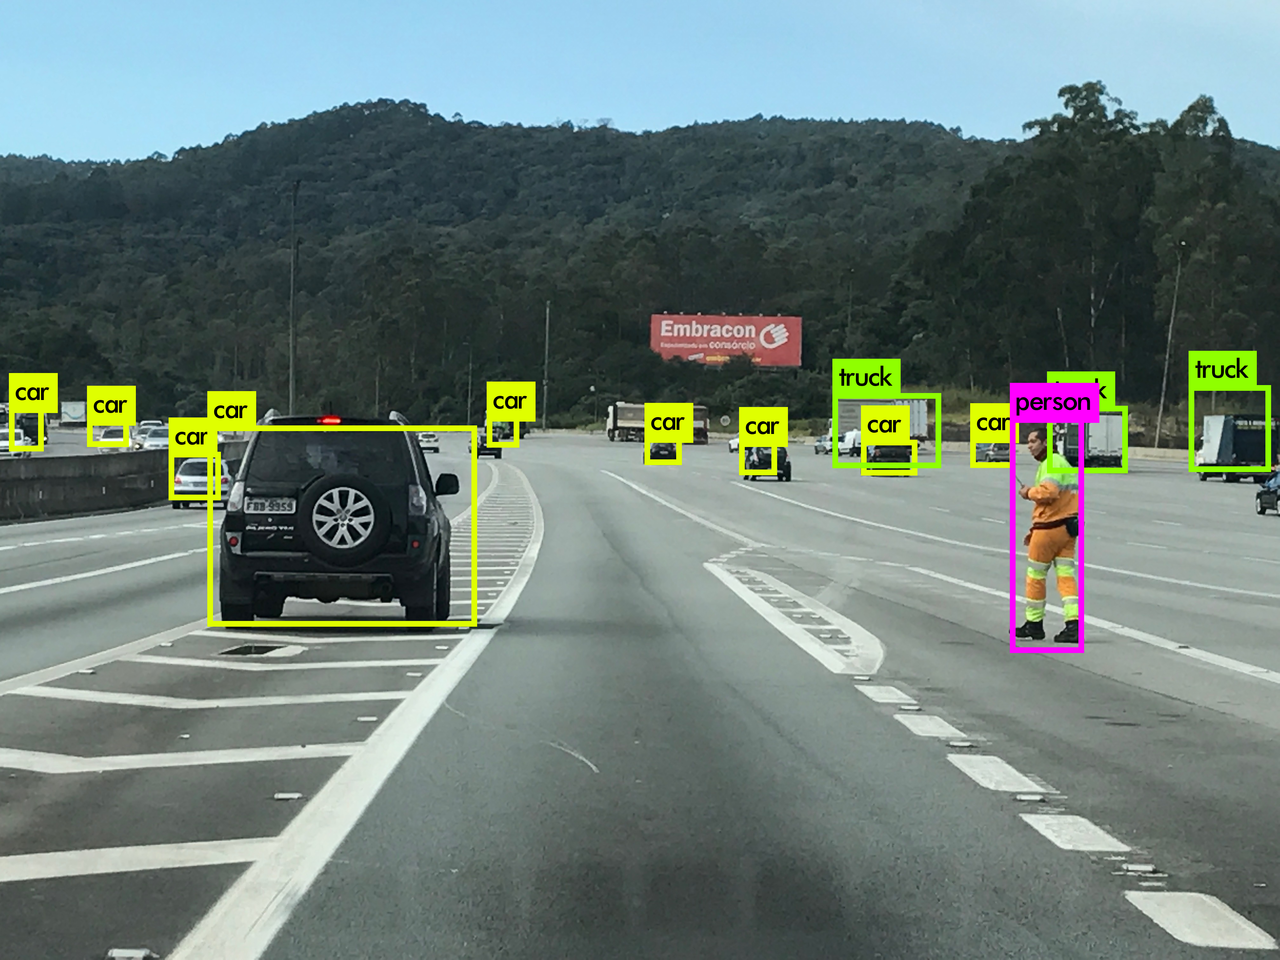 TOLLIA - Artificial intelligence to automatically identify and detect problematic behavior on highway tolls